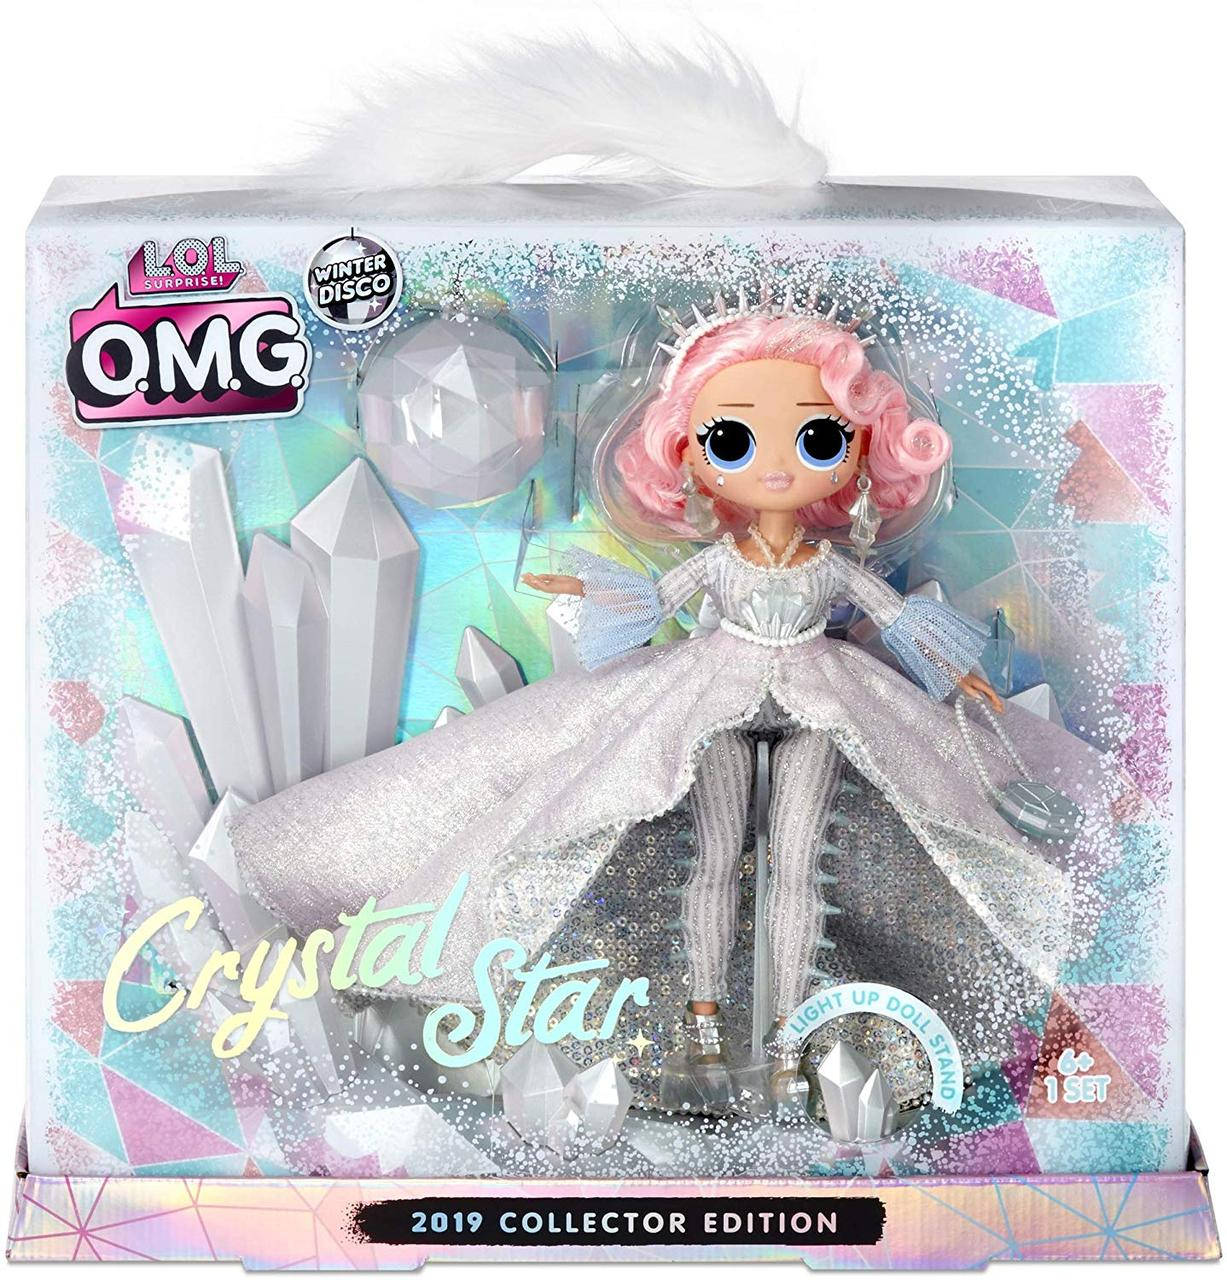 ЛОЛ O.M.G. Леди Кристалл /L.O.L. Surprise! O.M.G. Crystal Star 2019 Collector Edition